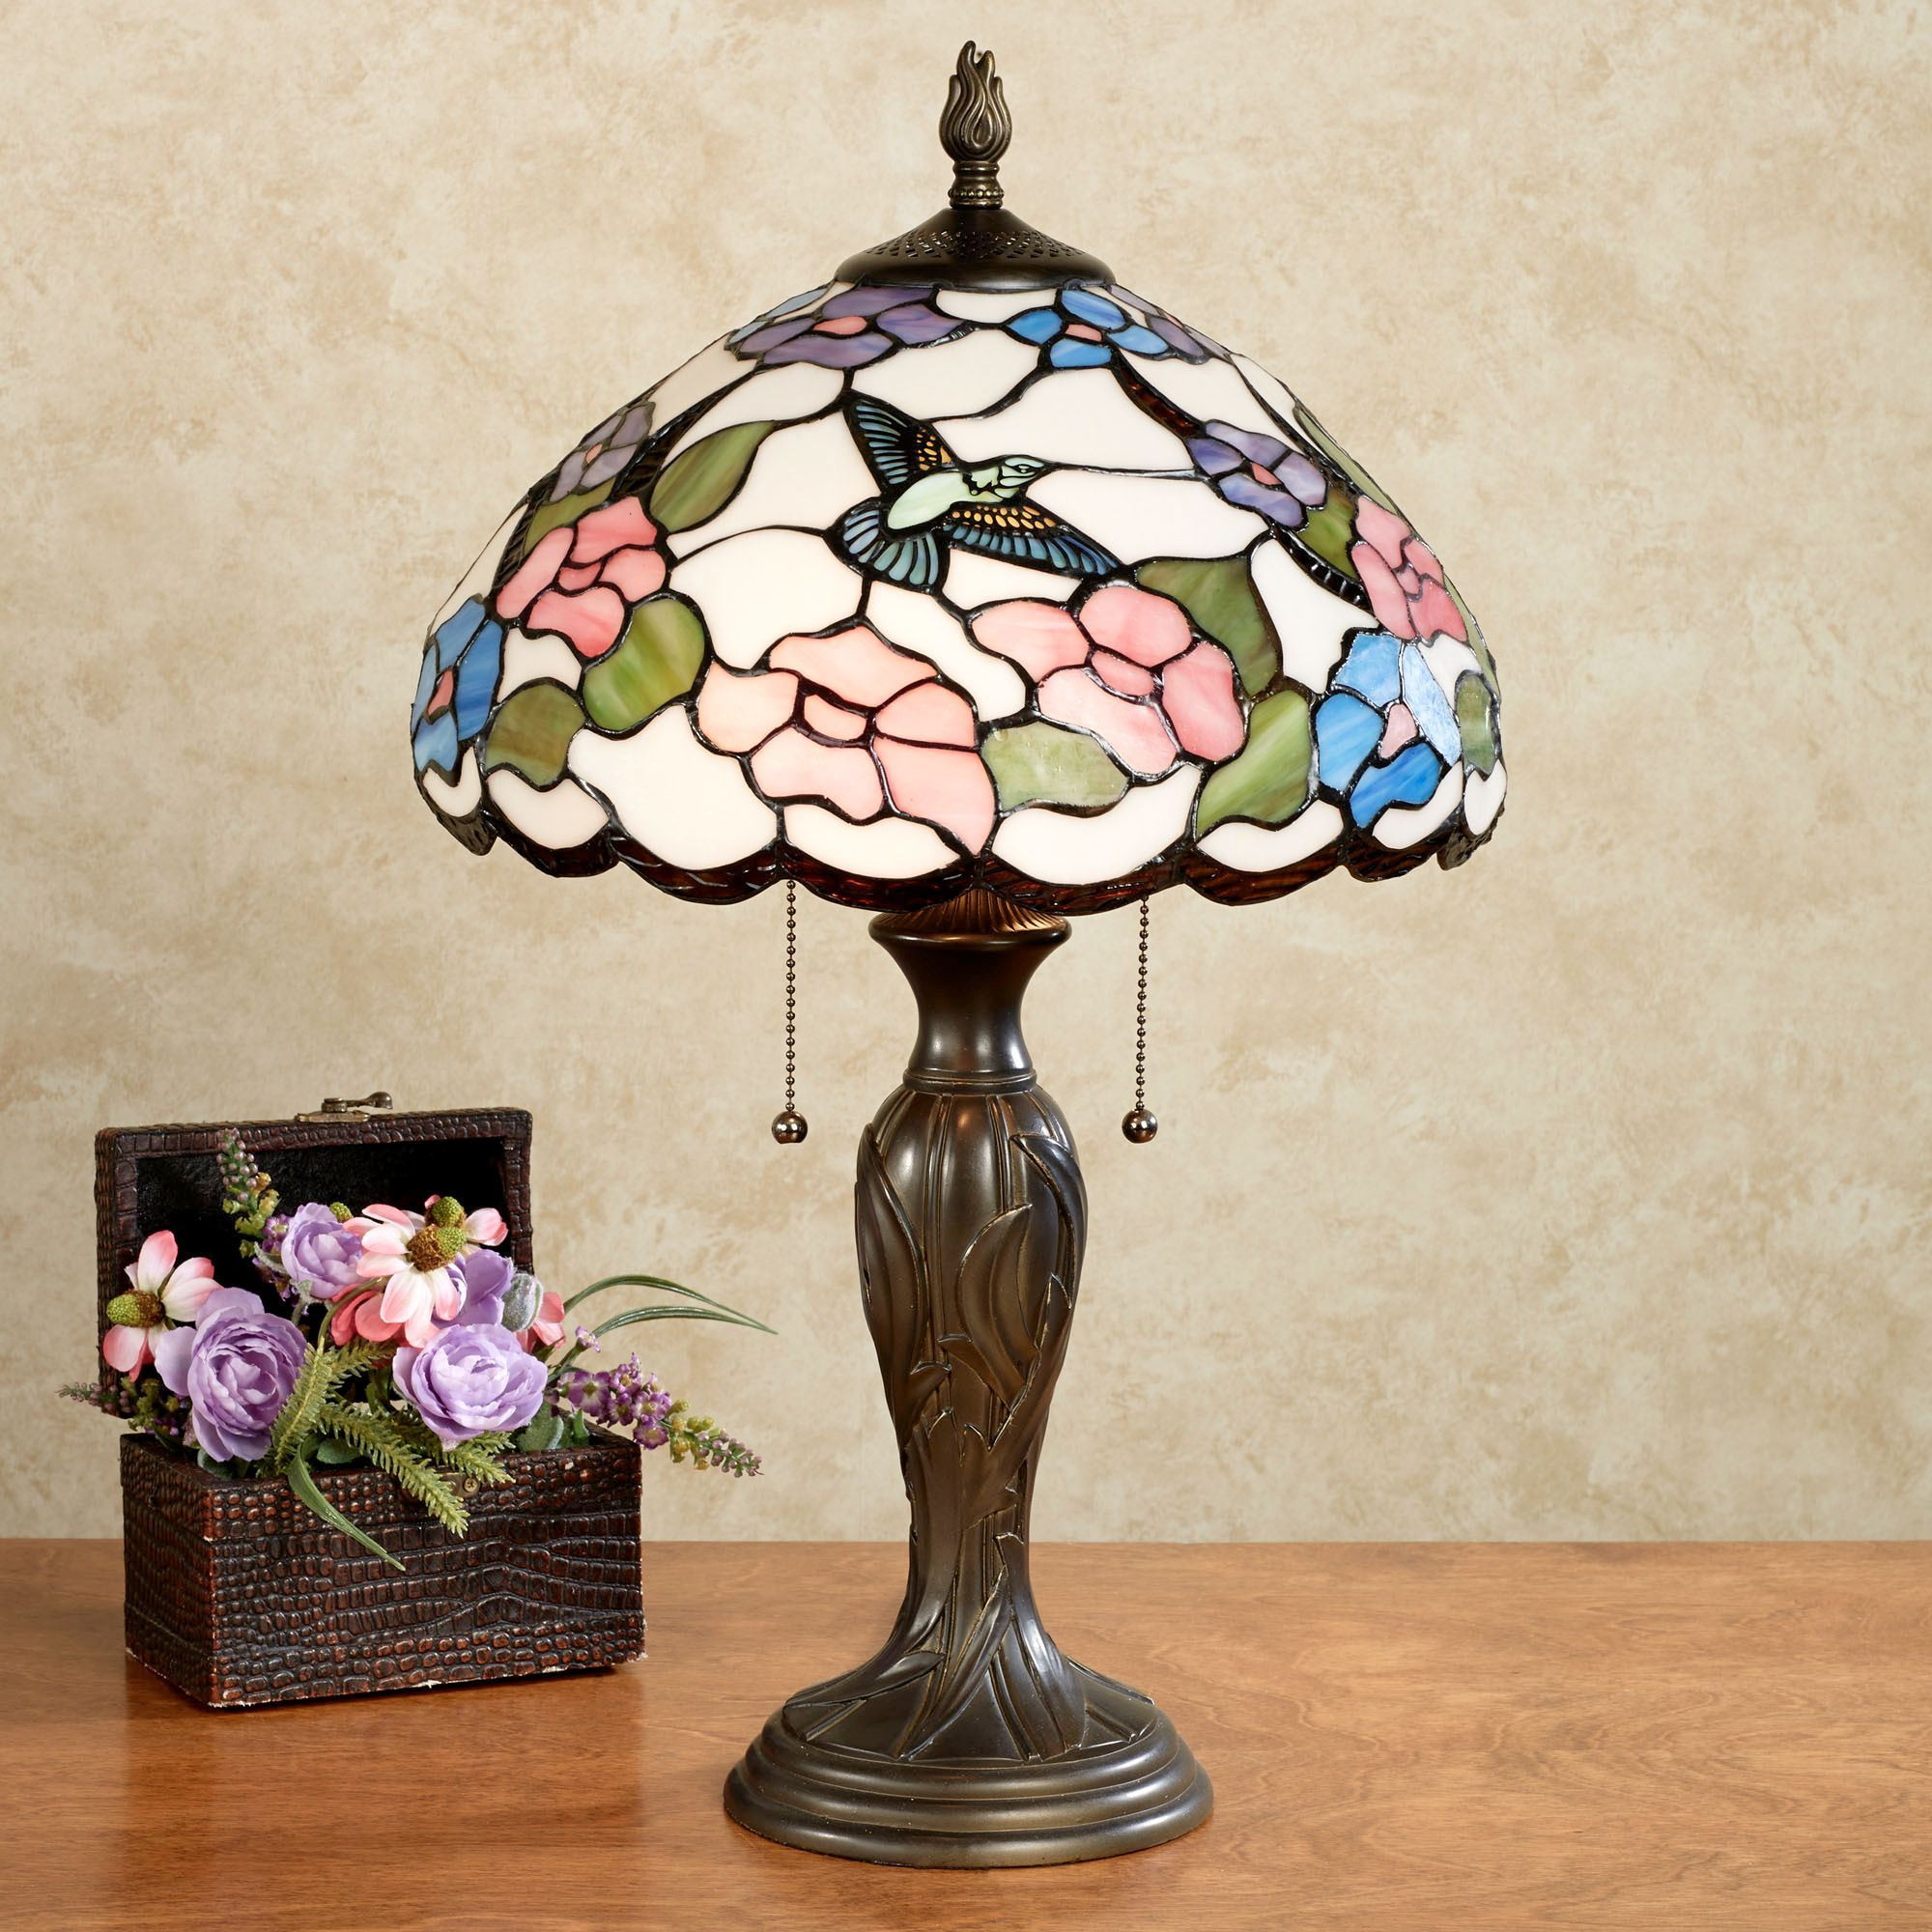 Best ideas about Stained Glass Desk Lamp . Save or Pin Sweet Nectar Hummingbird Stained Glass Table Lamp Now.